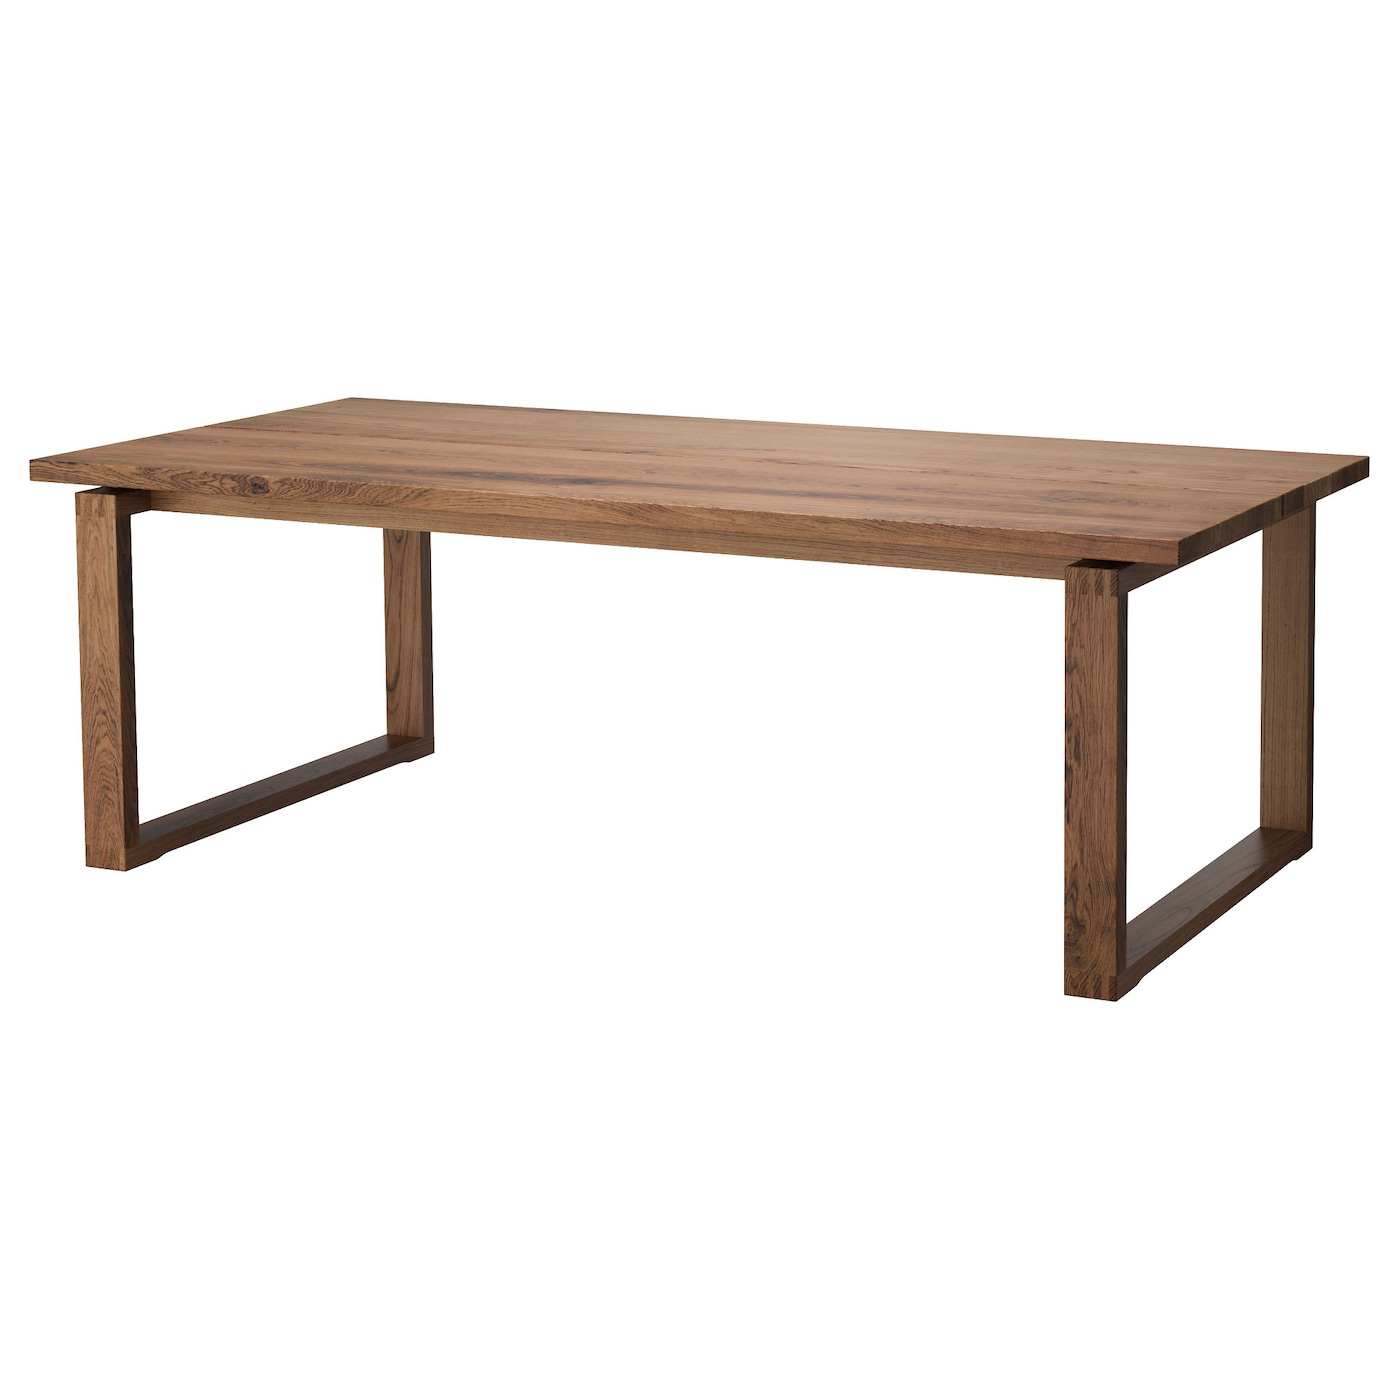 IKEA MORBYLANGA Table The Plank Expression Is Enhanced By Design On Edges